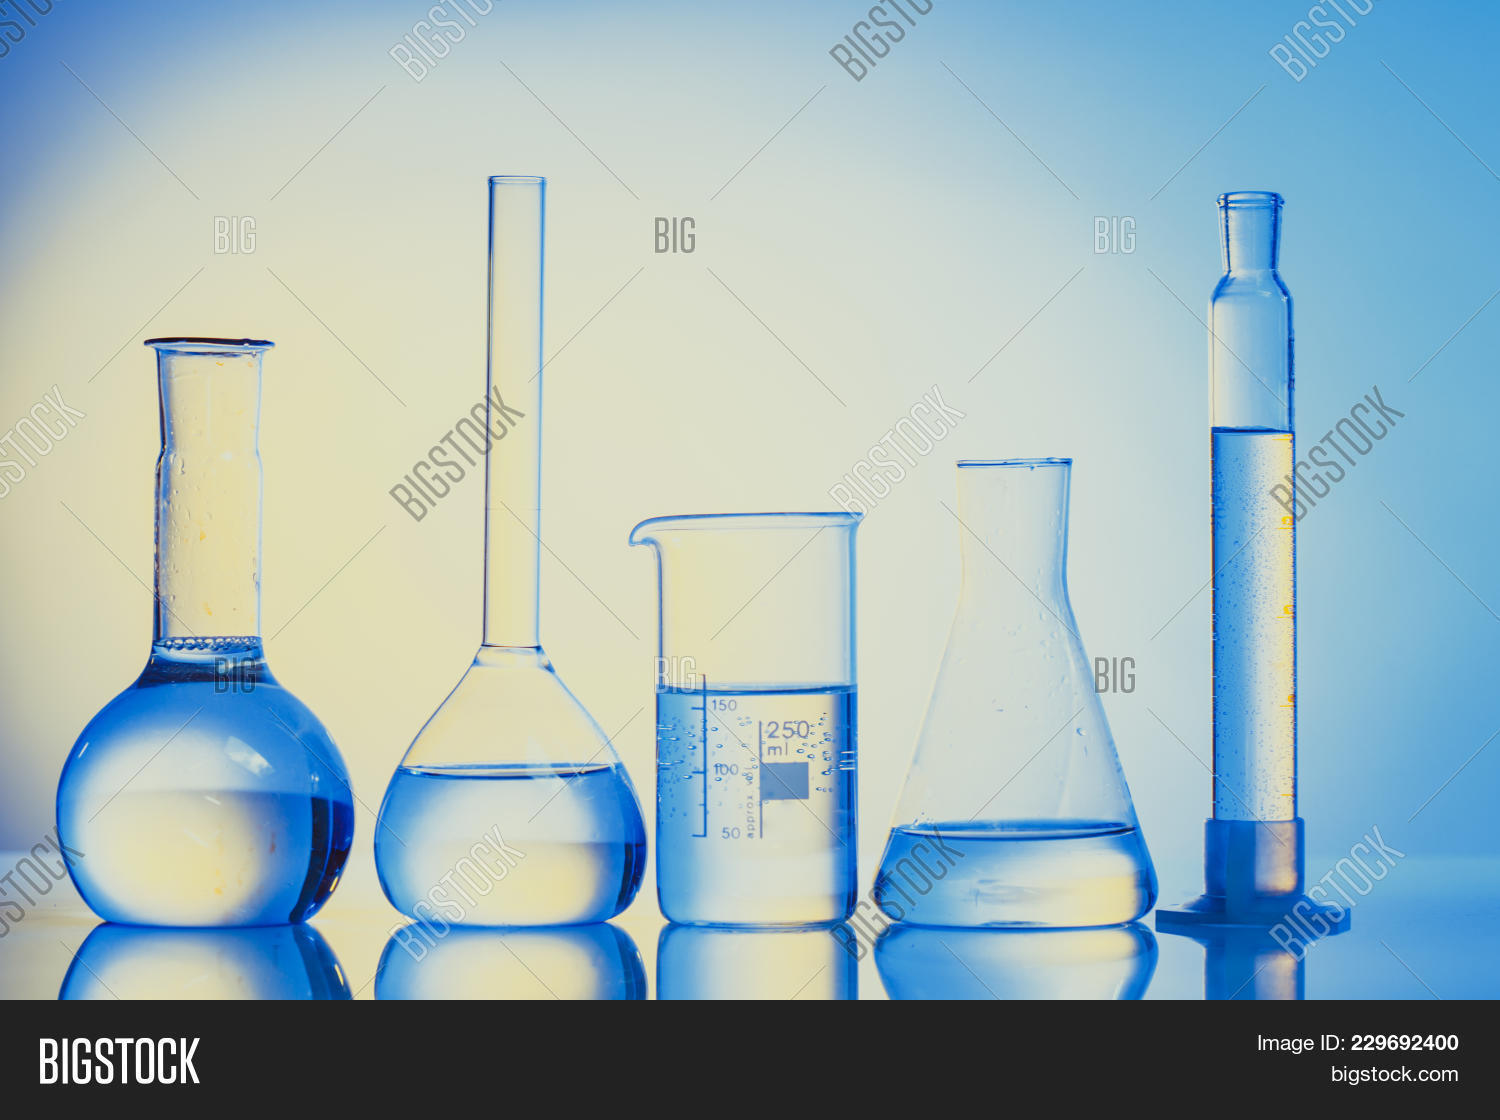 Chemistry powerpoint template most popular powerpoint templates laboratory glass for chemistry powerpoint template laboratory toneelgroepblik Image collections